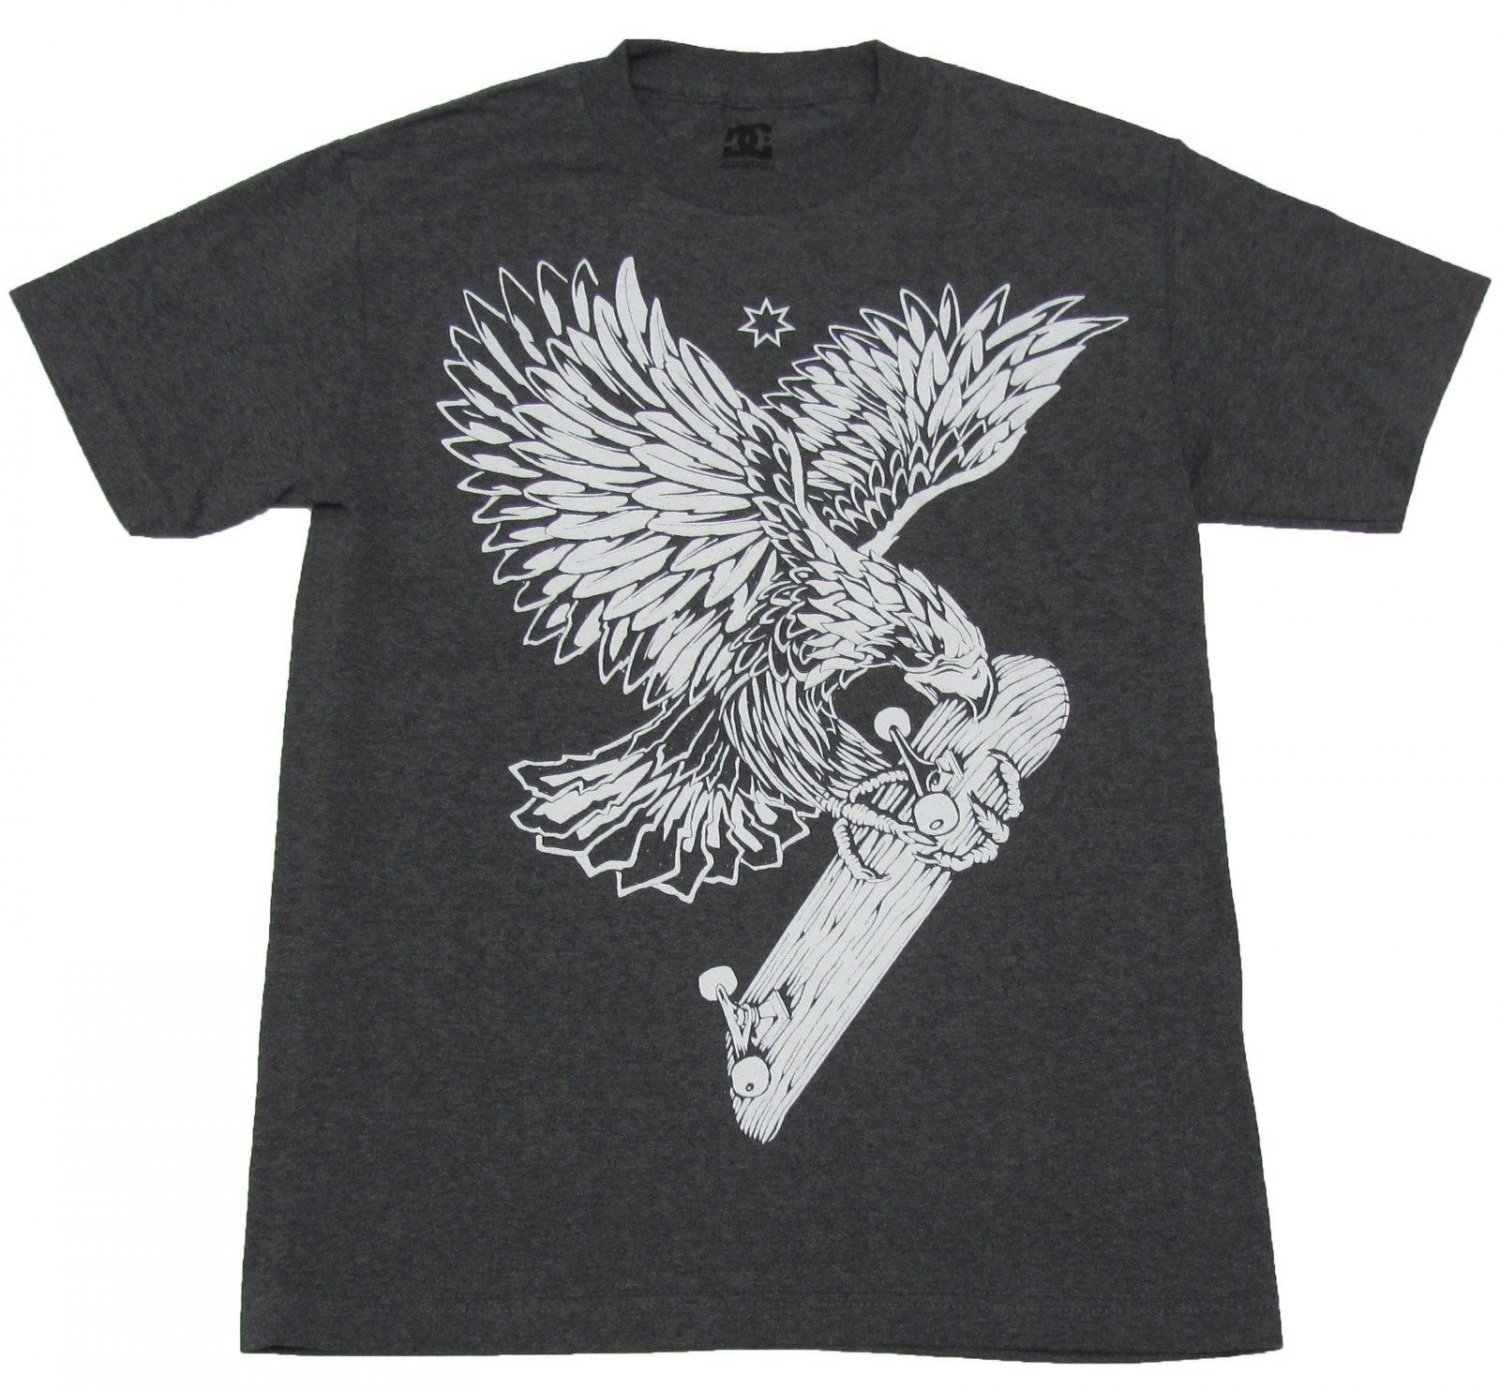 DC Shoes Mens S Woodpusher Tee Shirt Eagle Hawk Skateboard T-shirt Charcoal Gray Small